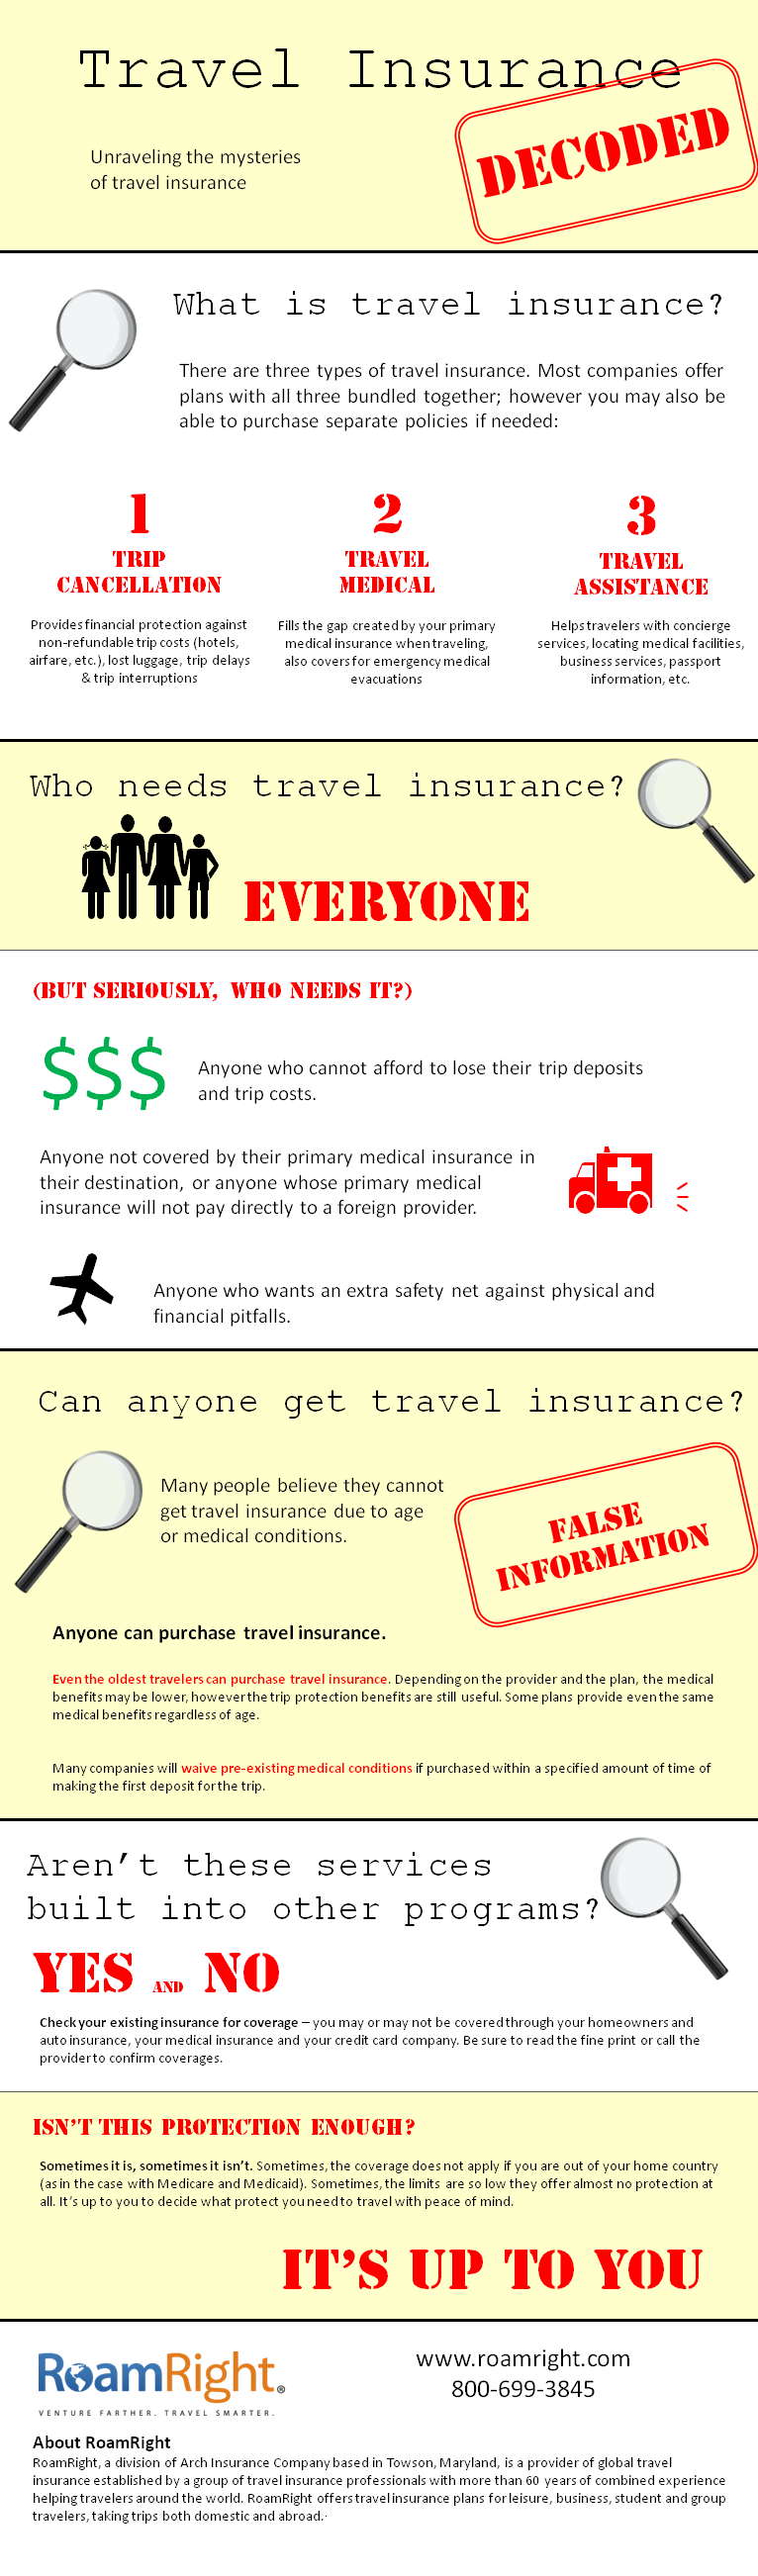 Is travel insurance necessary? This infographic answers this and other questions.